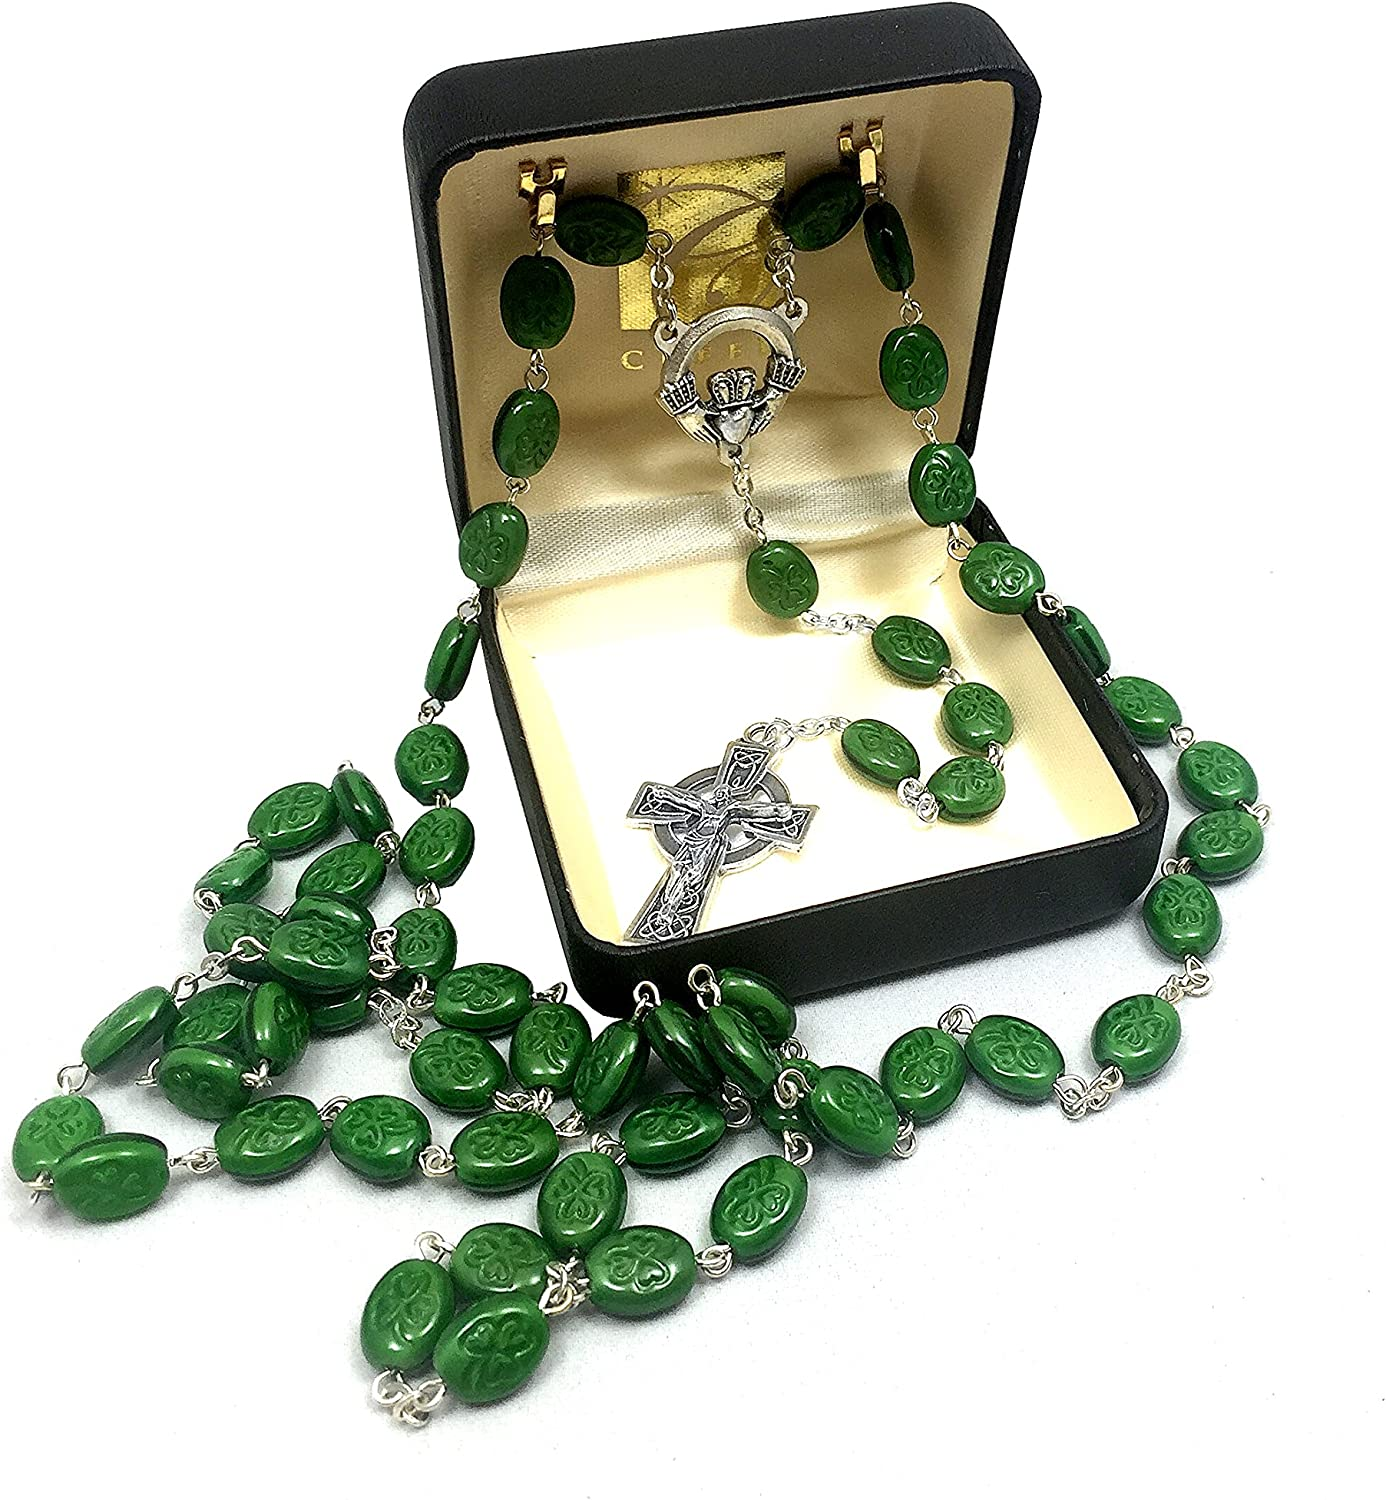 Elysian Gift Shop 24  Irish Shamrock Beads Green pinkry with Silver Tone Celtic Cross and Claddagh Centerpiece